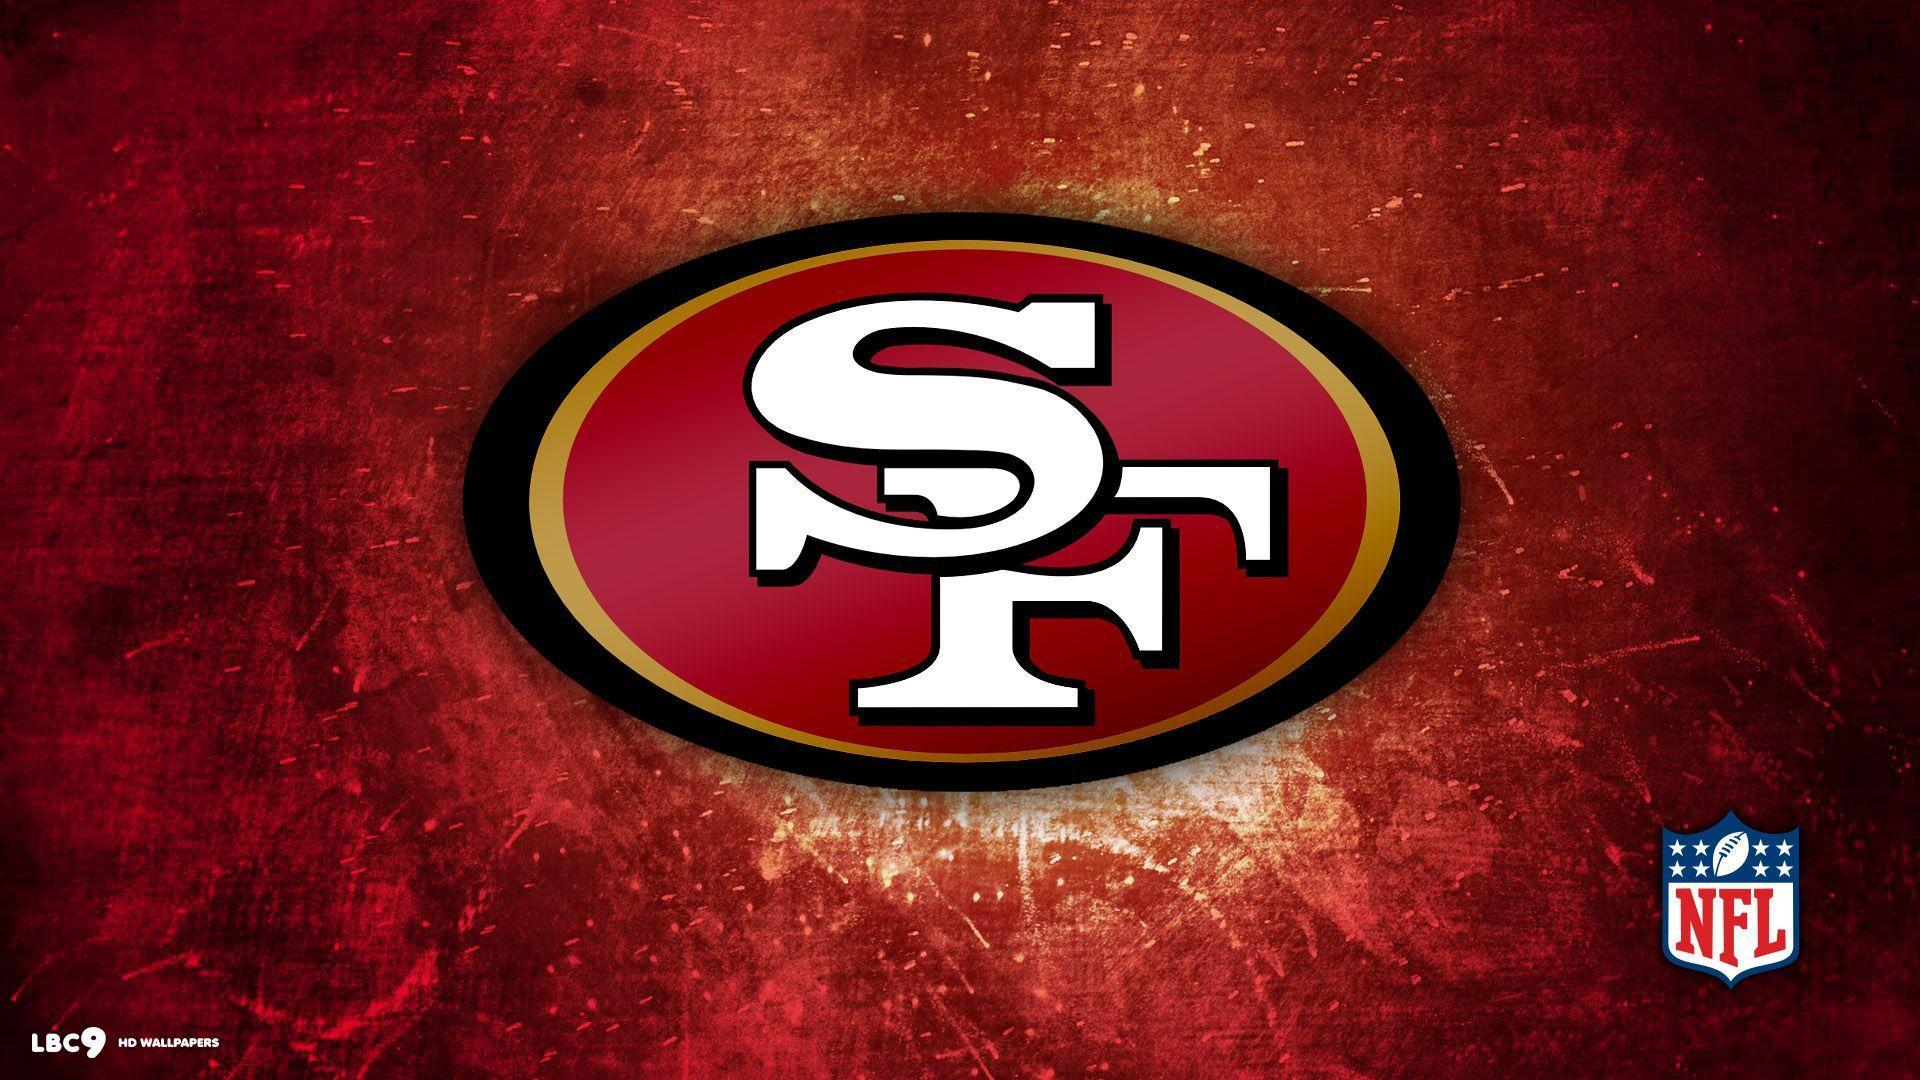 49ers hd wallpapers